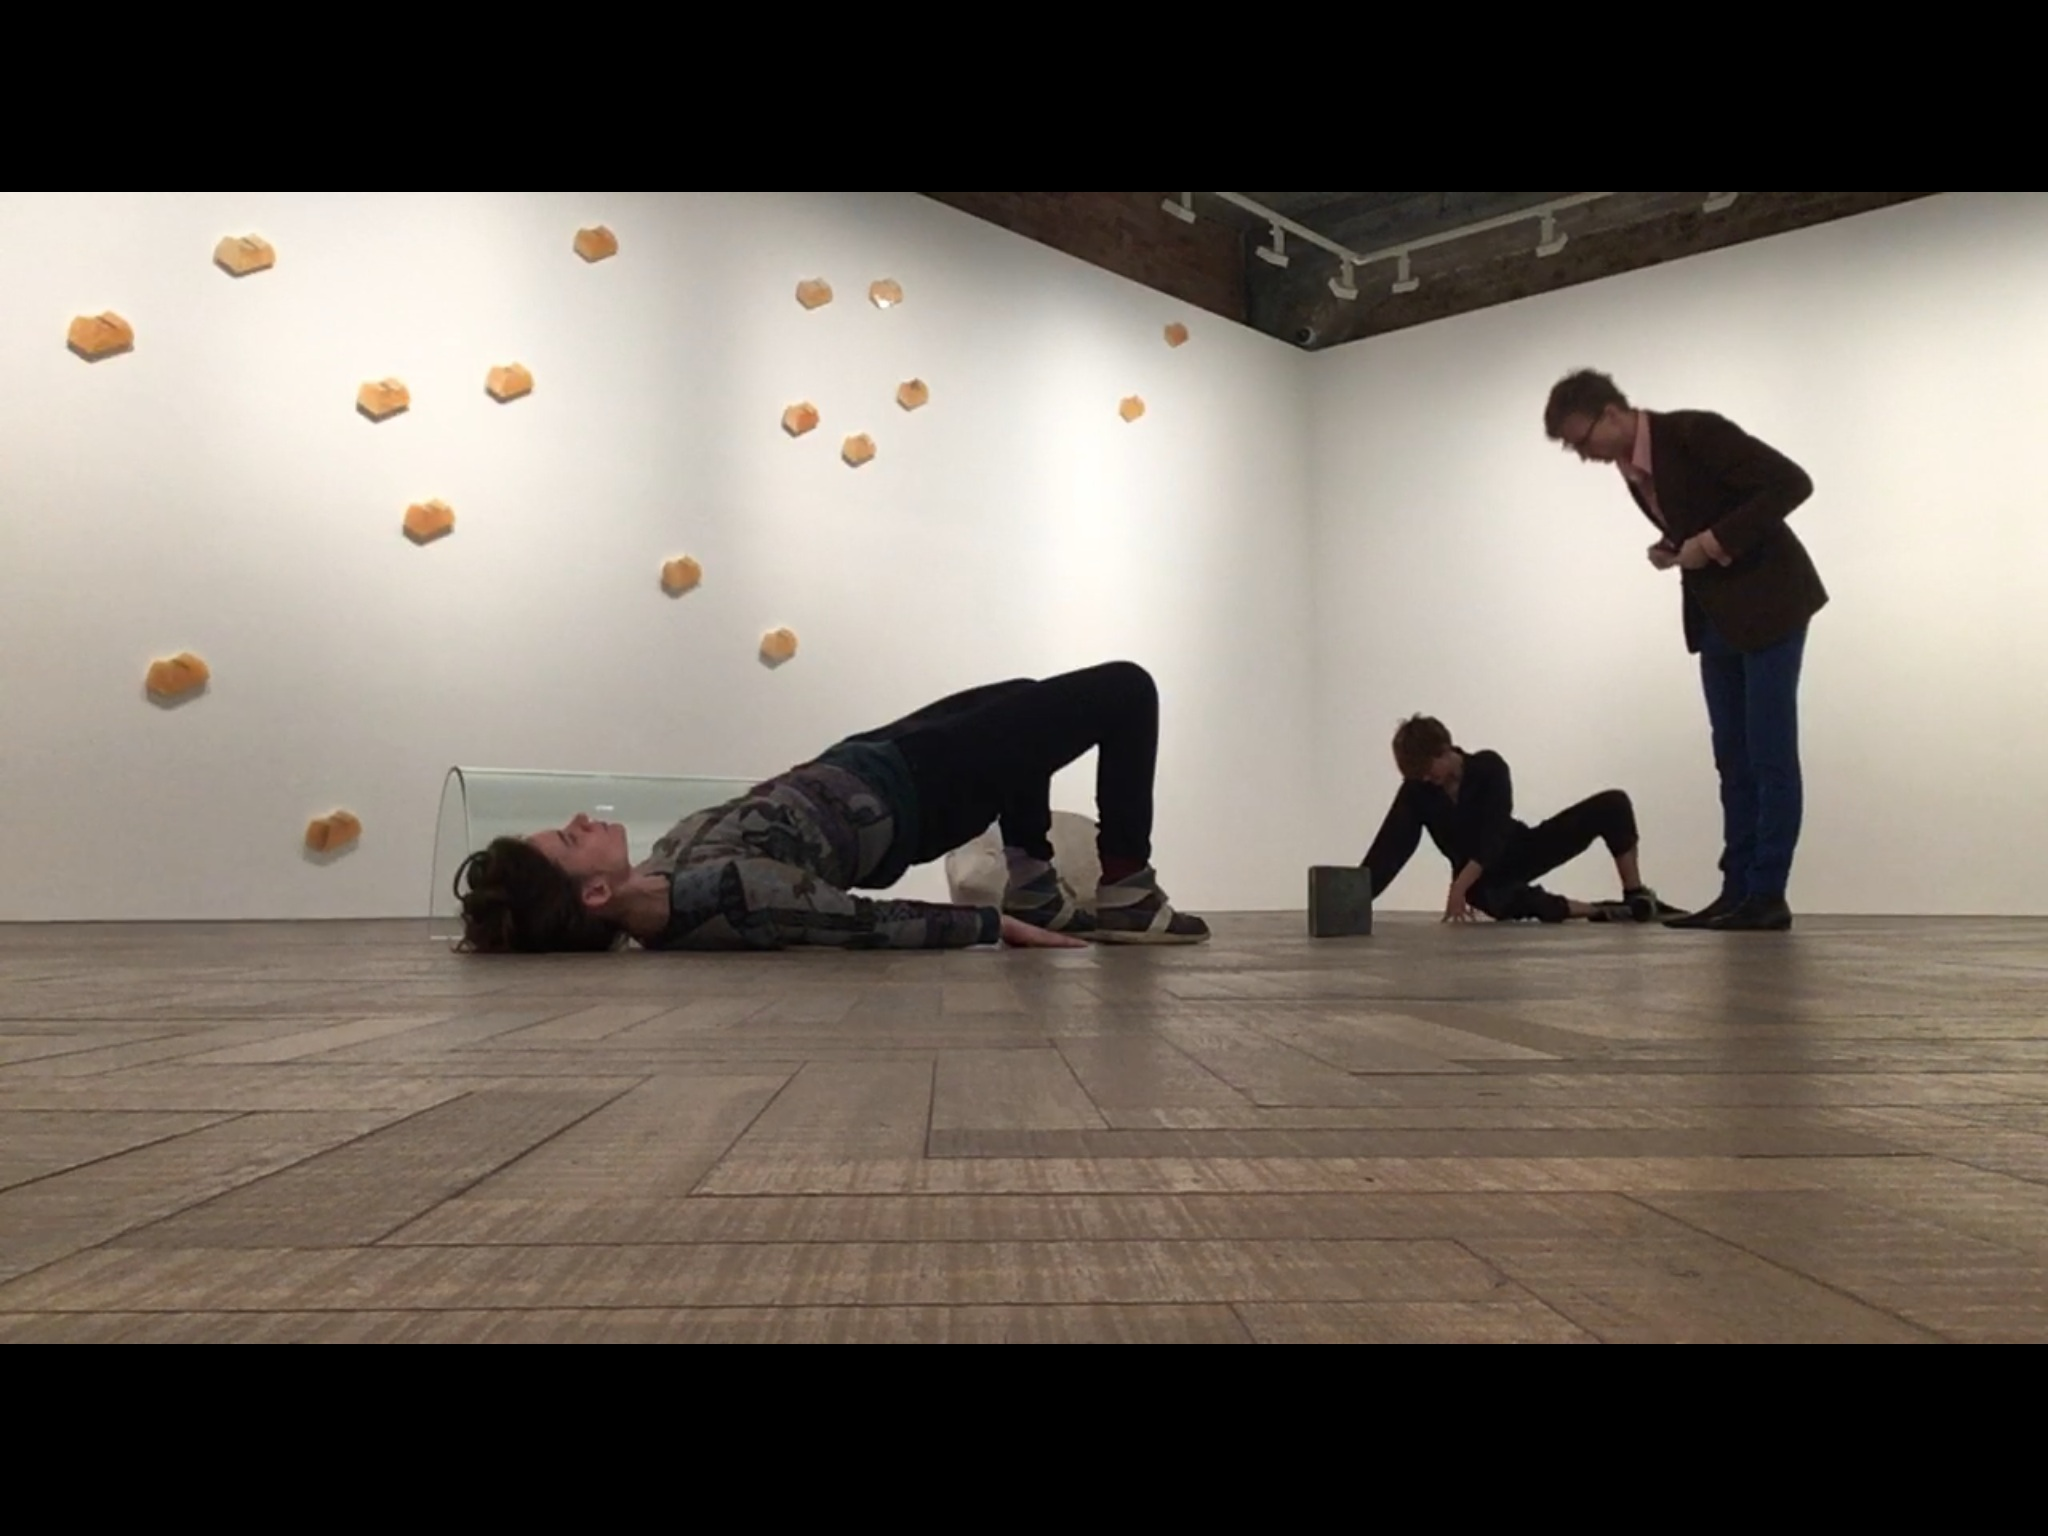 - Activating Jose Damasceno's exhibition 'RE: PUBLICA' at Thomas Dane Gallery, London, May 2018Cast: Jade SuperBat Wilford, Harald Agustsson, Nadia BerriExtracts: https://vimeo.com/265056309